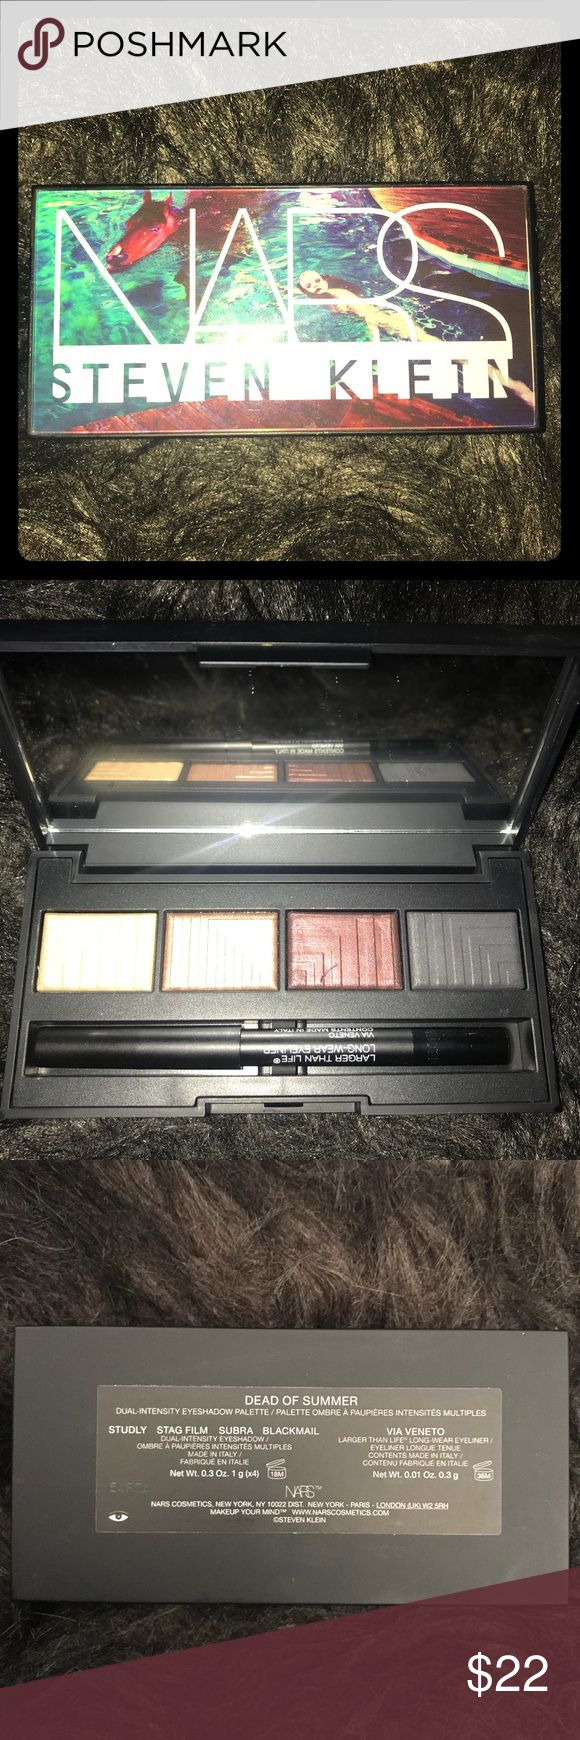 NARS Steven Klein Dead of Summer Plaette NARS Steven Klein Dead of Summer Dual-Intensity Palette. Never used. In great condition. Beautiful casing. Colors include: Studly, Stag Film, Subra, and Blackmail.   Includes Larger Than Life Long-Wear Eyeliner. Color Via Veneto. NARS Makeup Eyeshadow